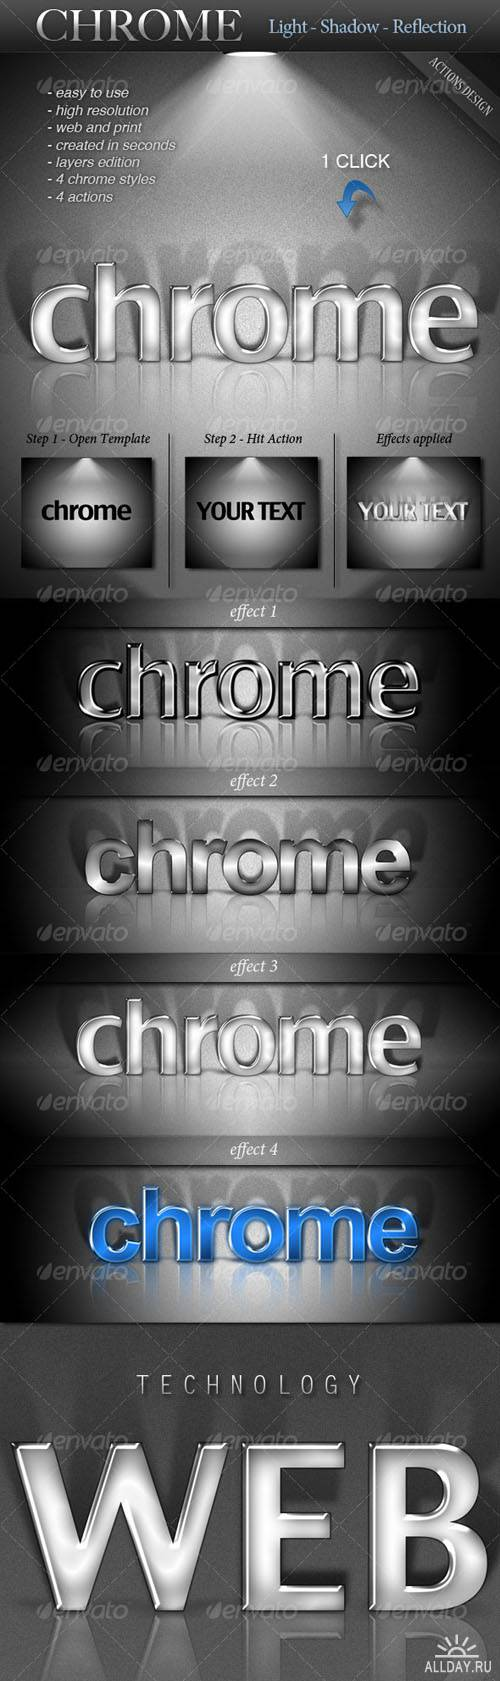 GraphicRiver - CHROME - Light - Shadow - Reflection